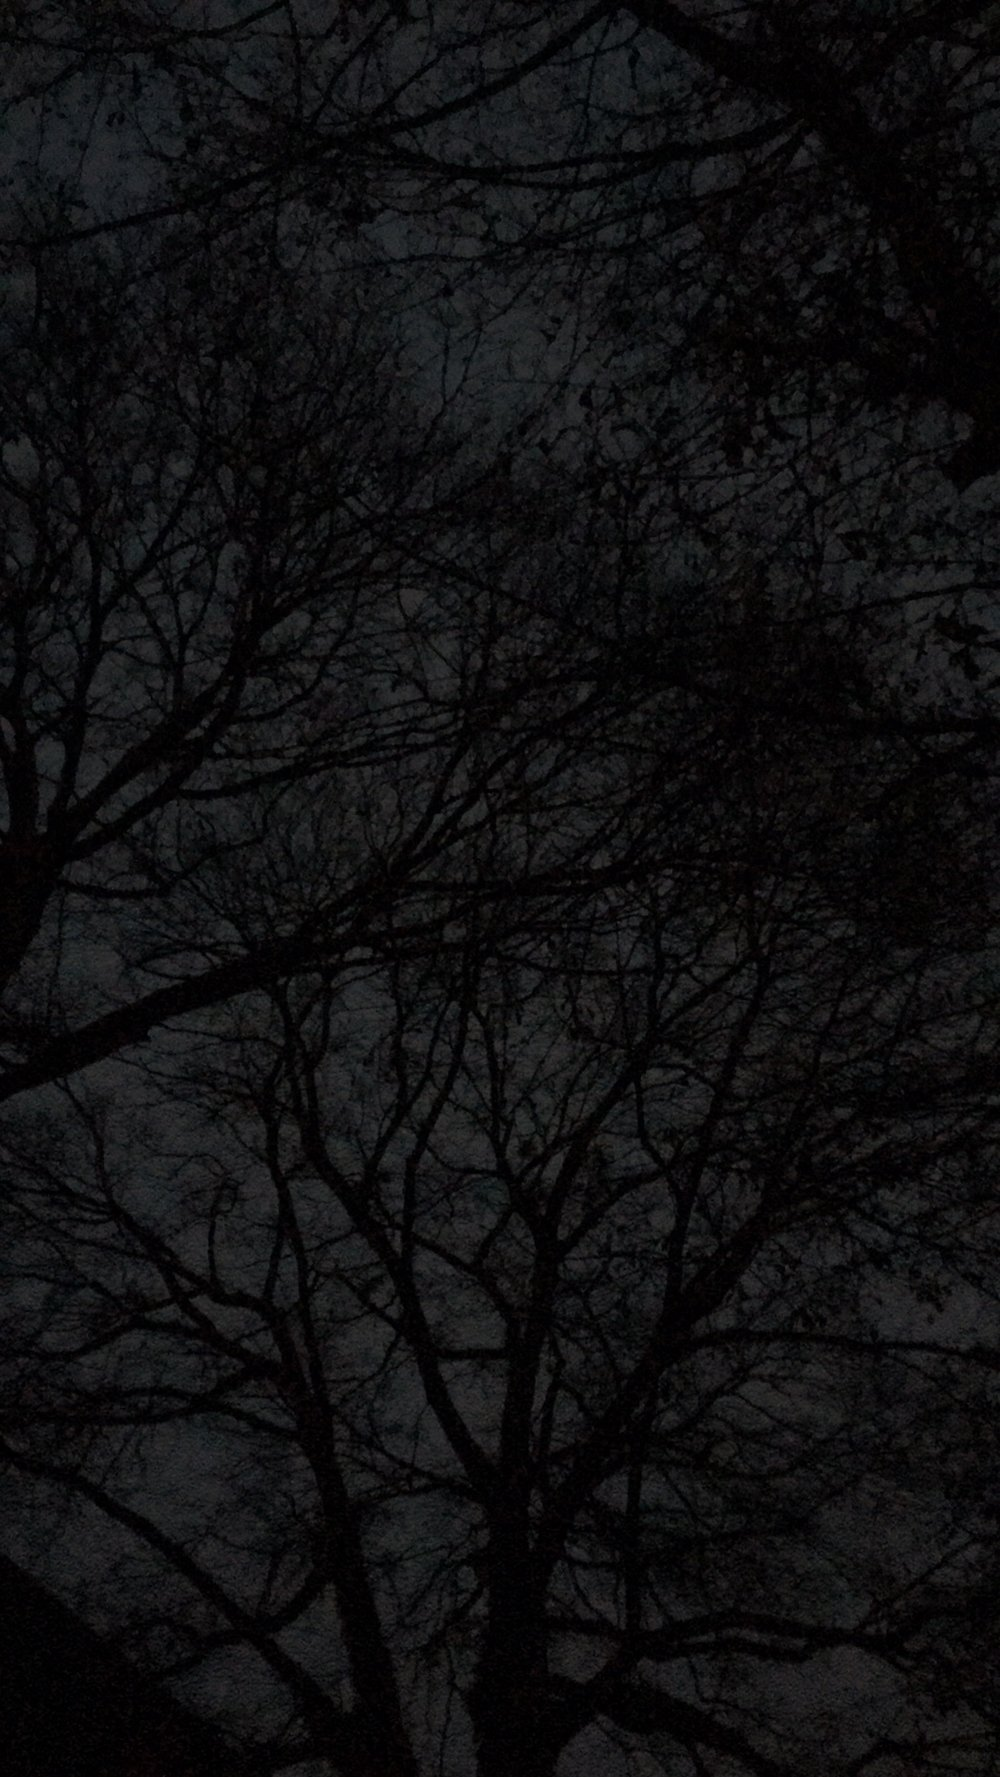 trees at dusk in my backyard